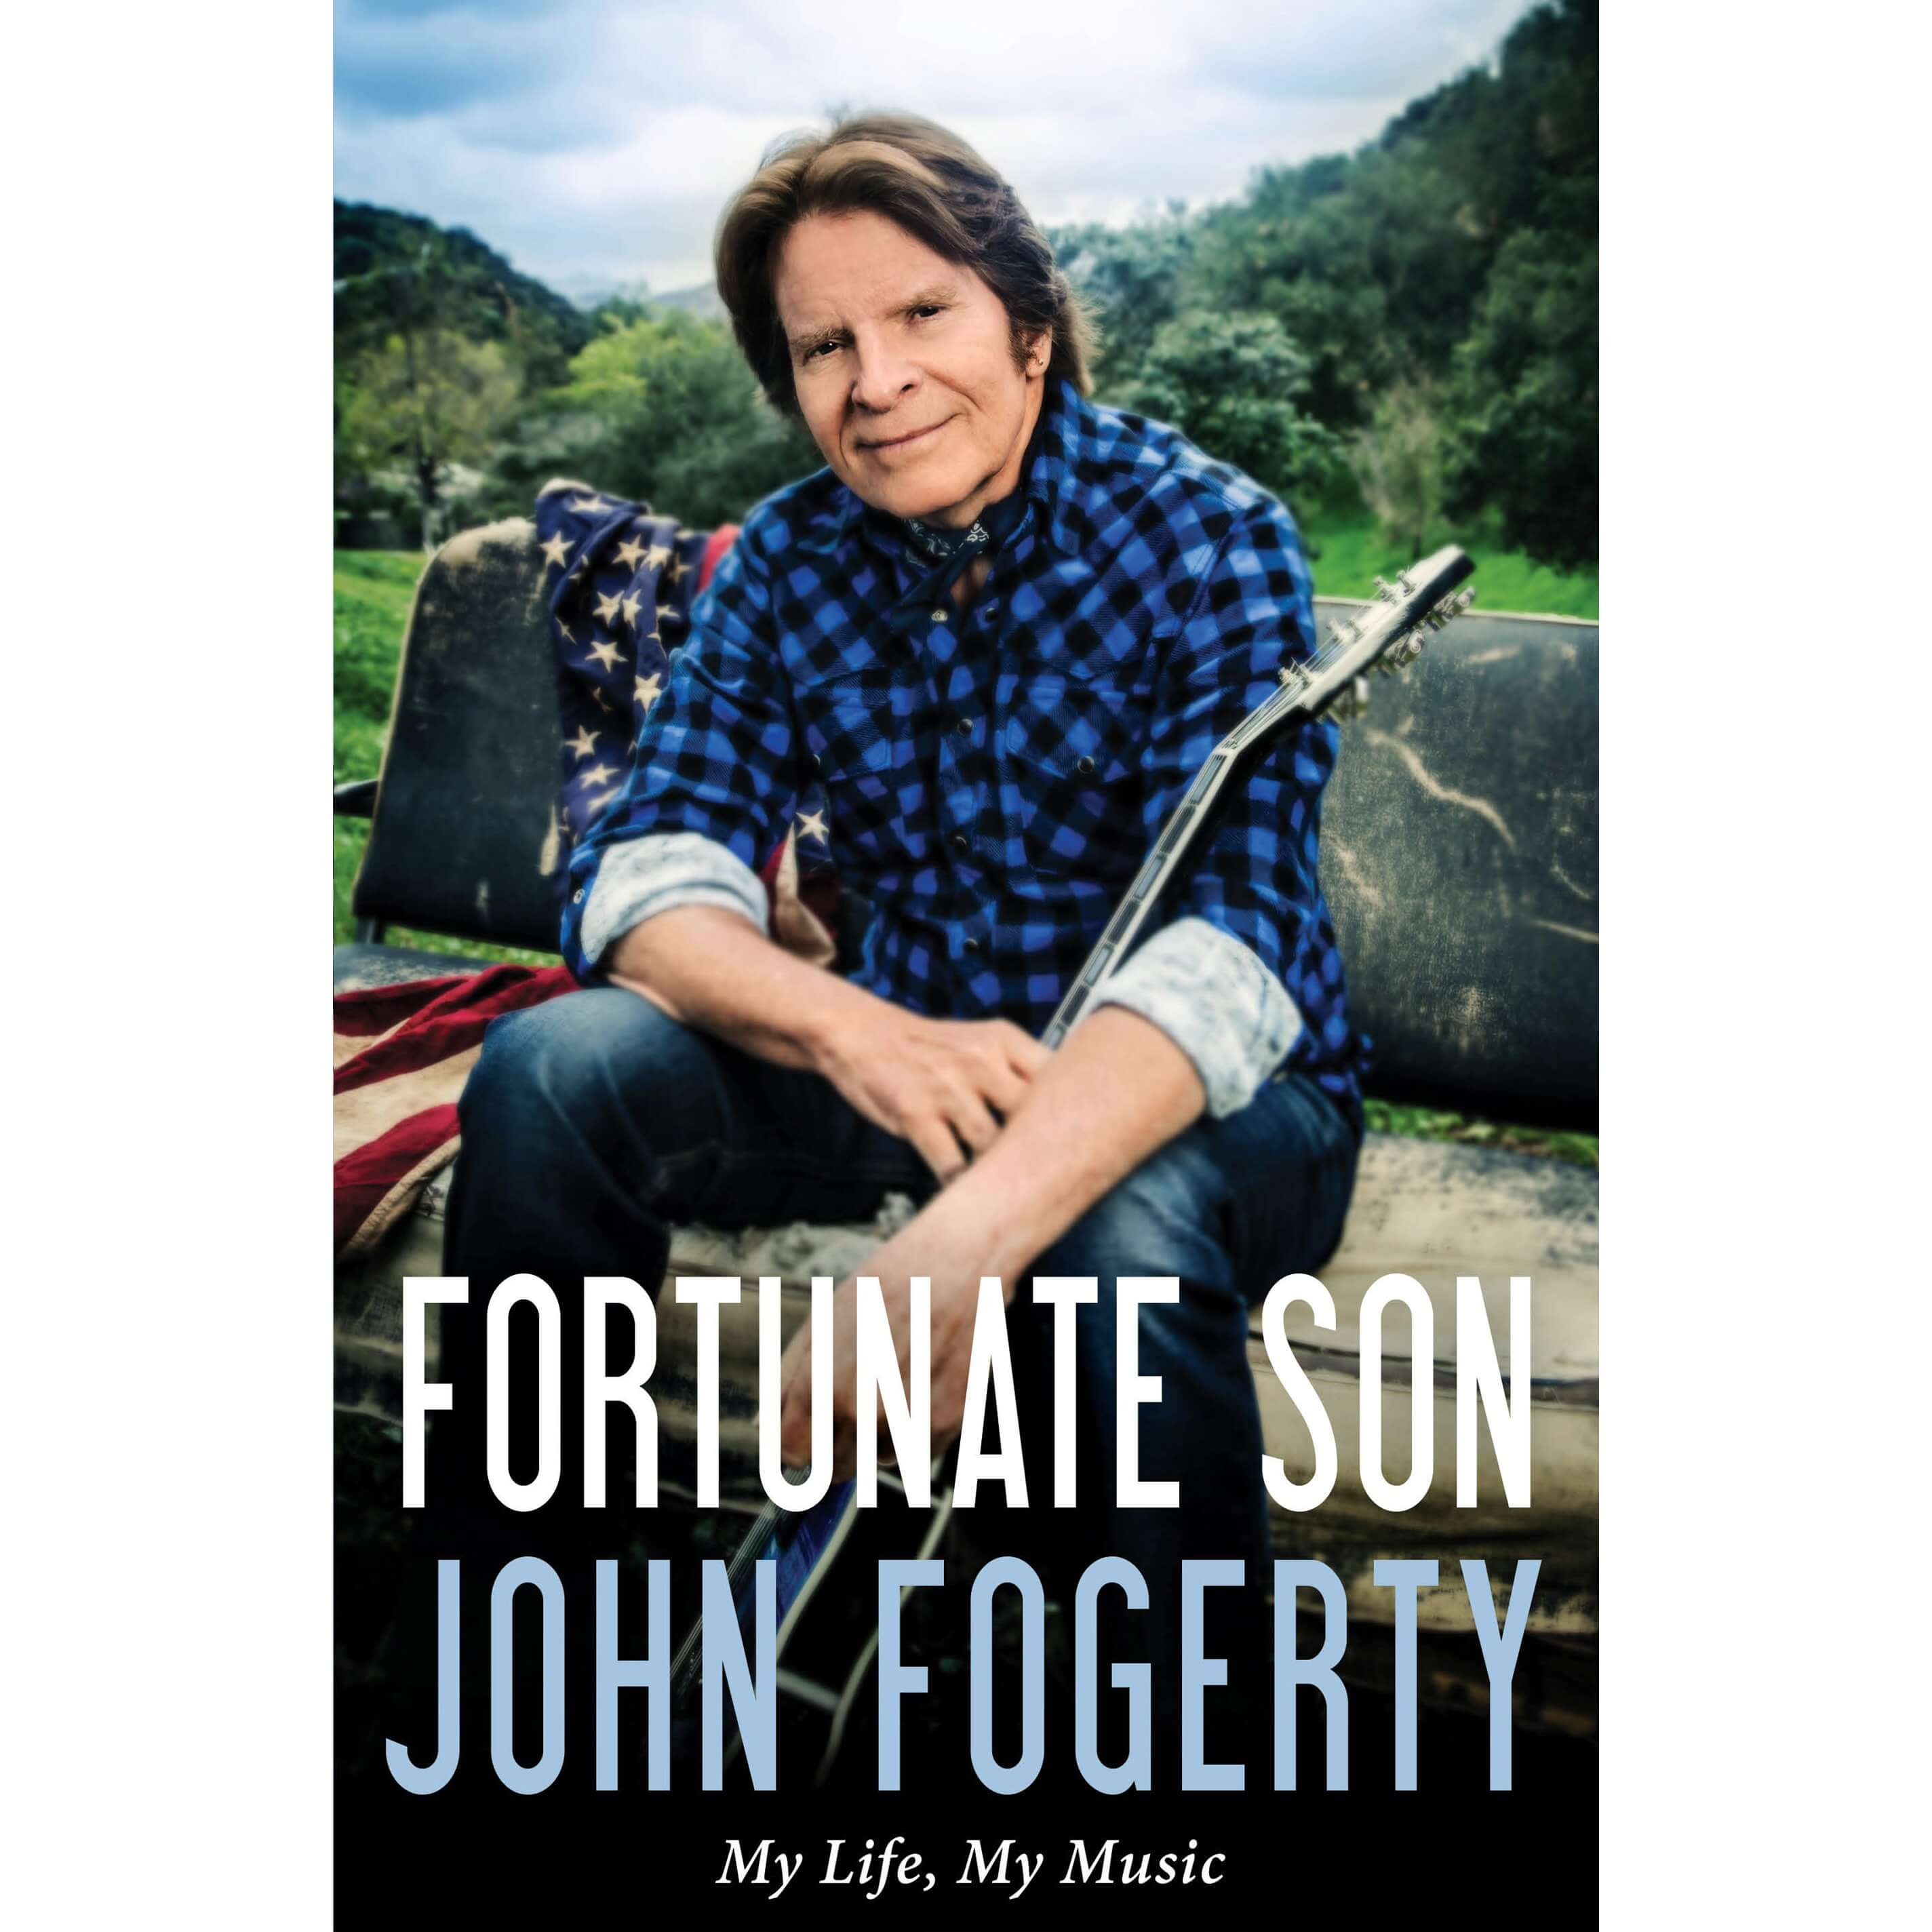 "<span class=""dojodigital_toggle_title"">Review of John Fogerty Memoir</span>"